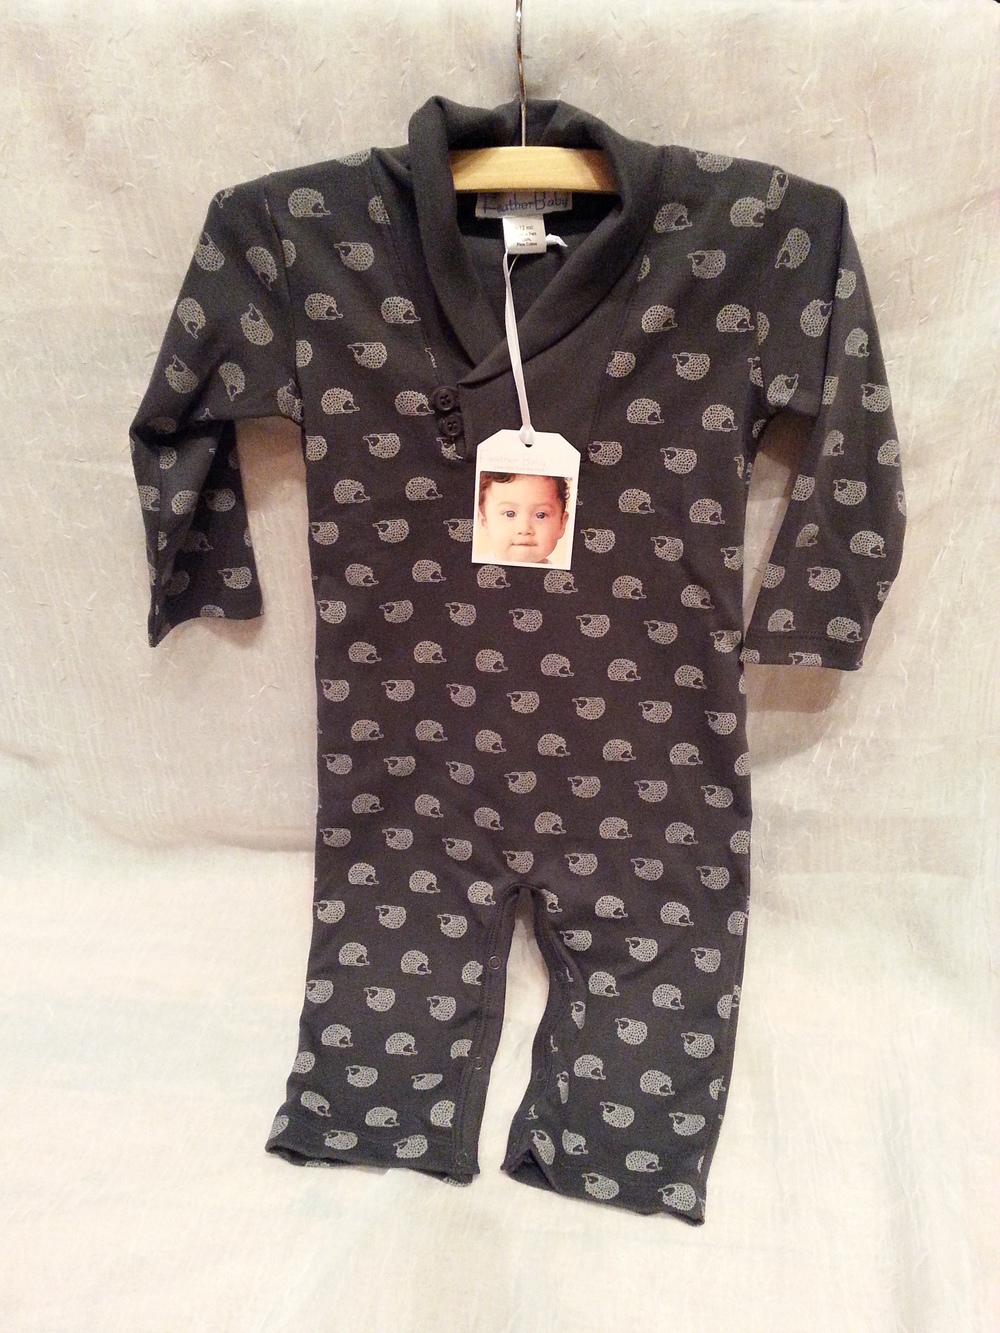 Feather Baby Pima Cotton Grey Hedgehog Romper in 9-12m $42.95 Wants 1 PURCHASED